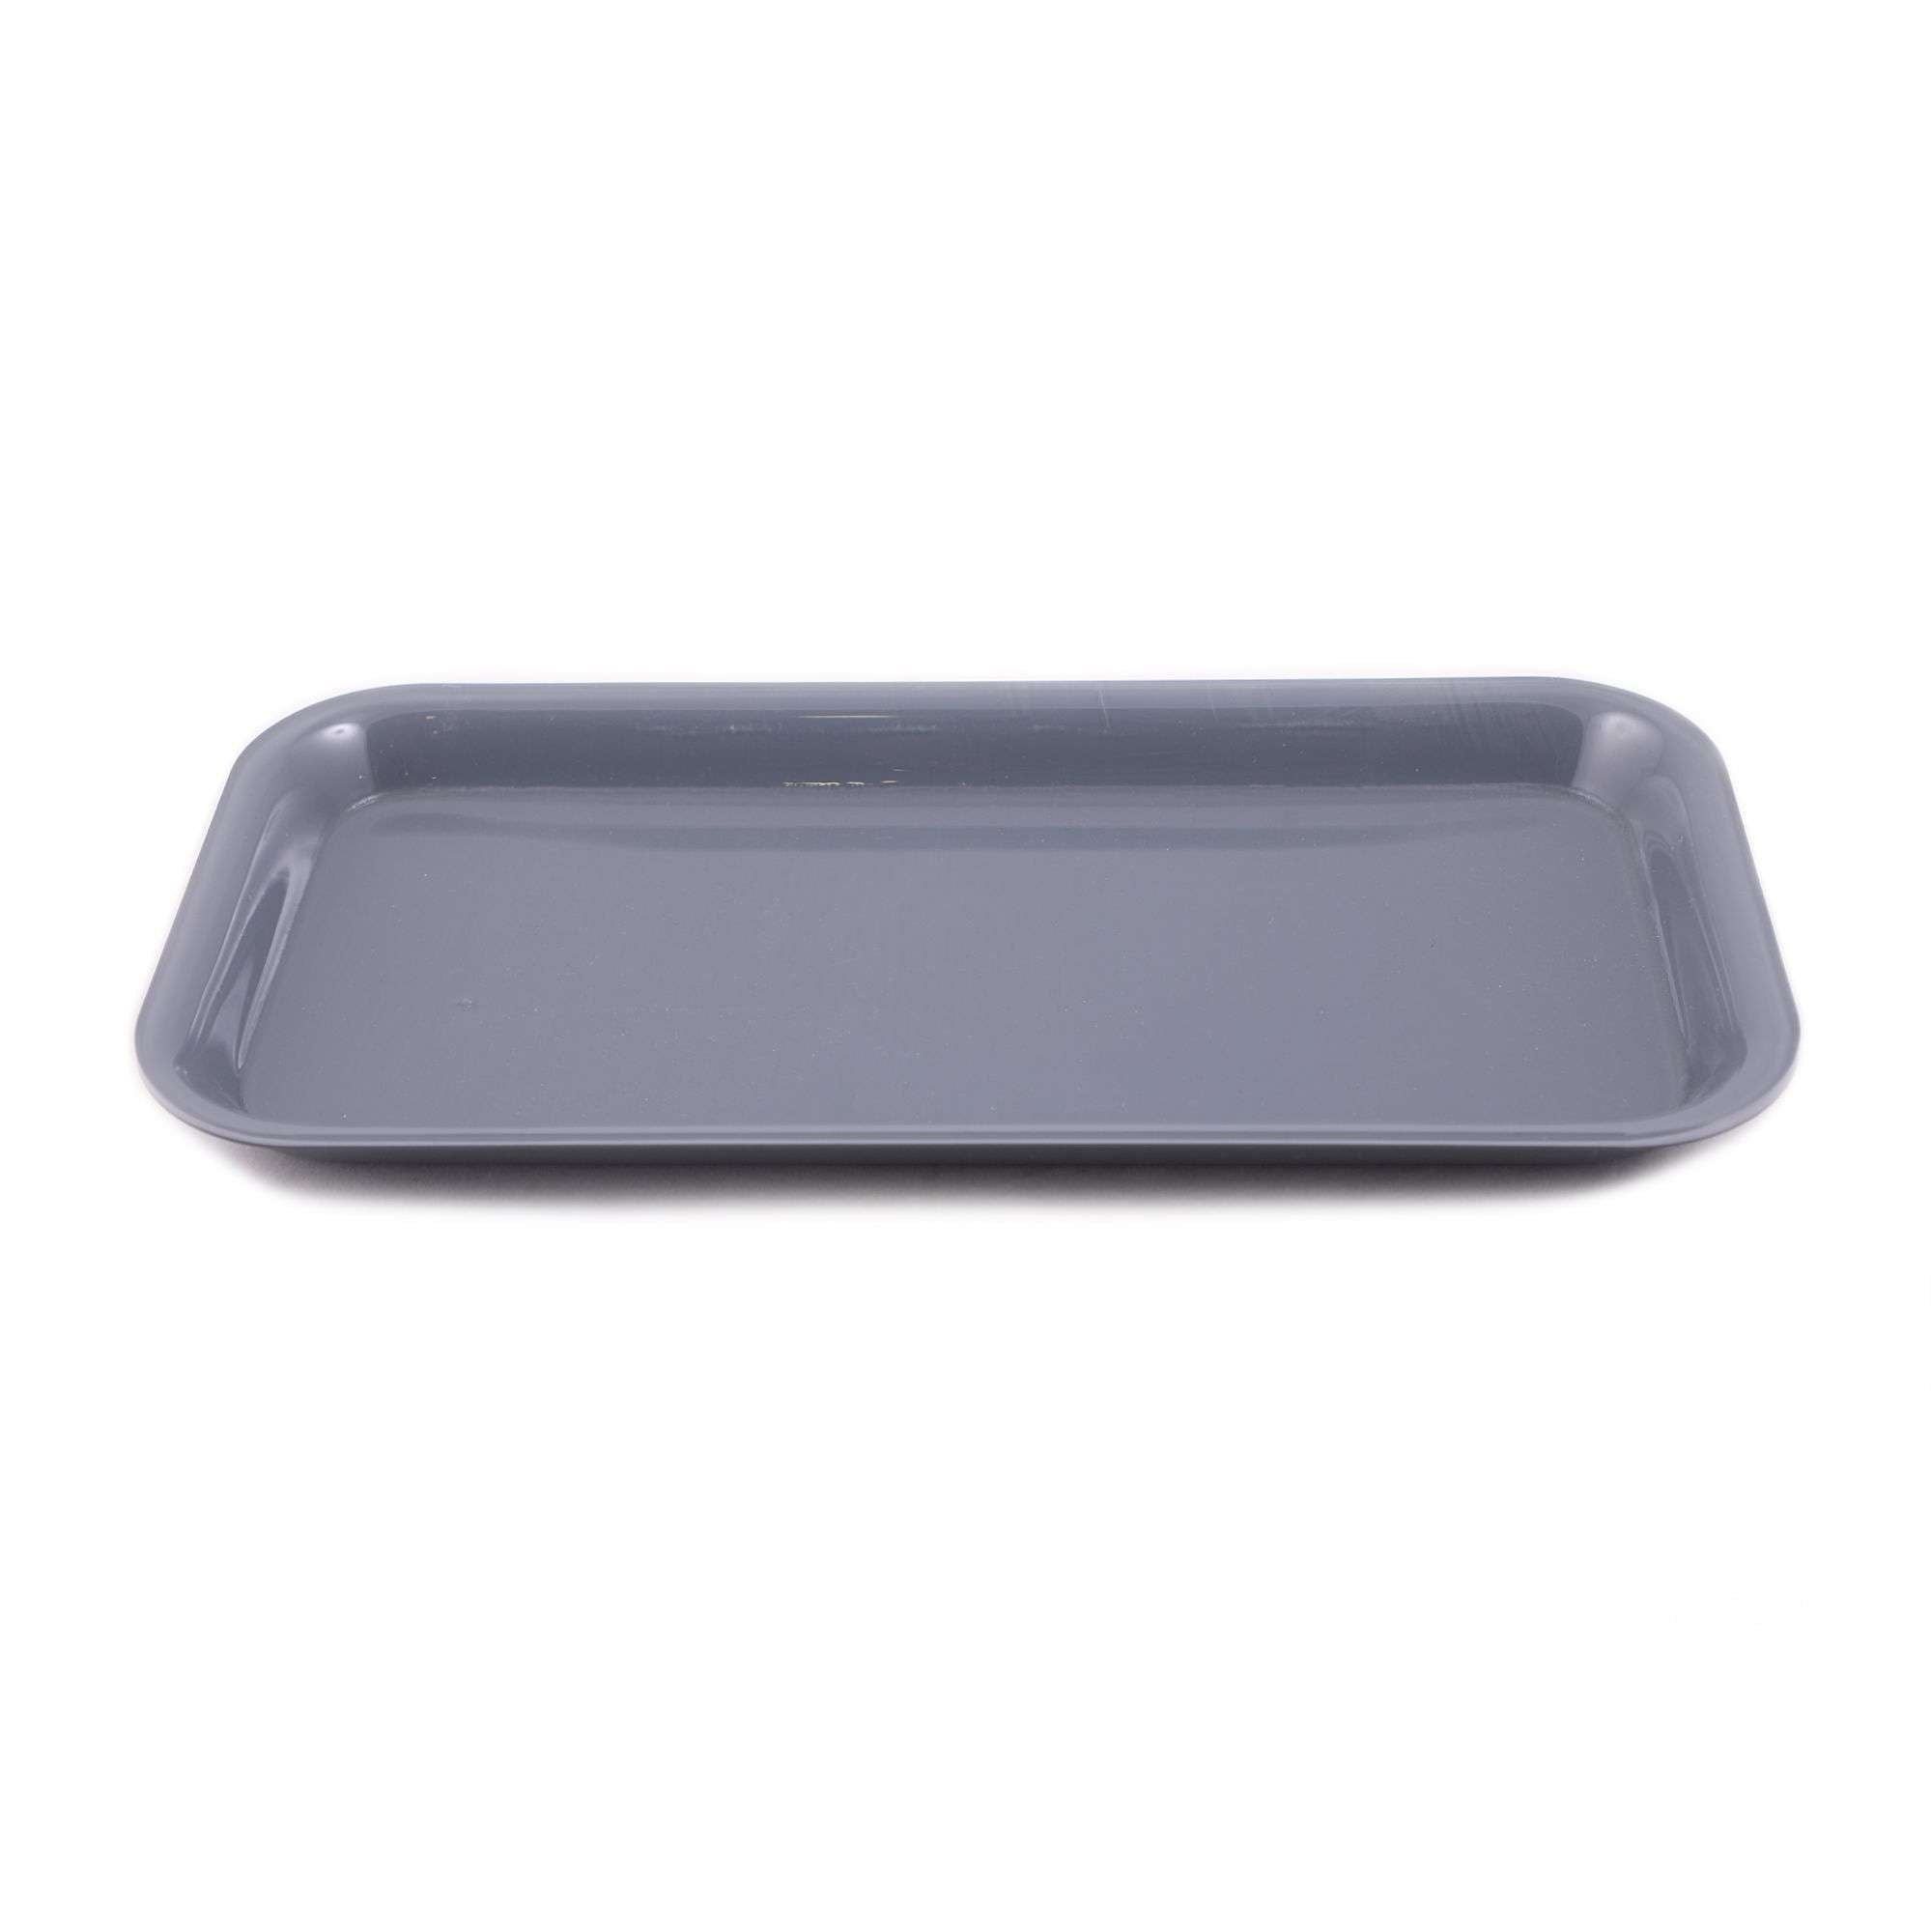 Casa Blackish Grey Plate Tray for different Purposes